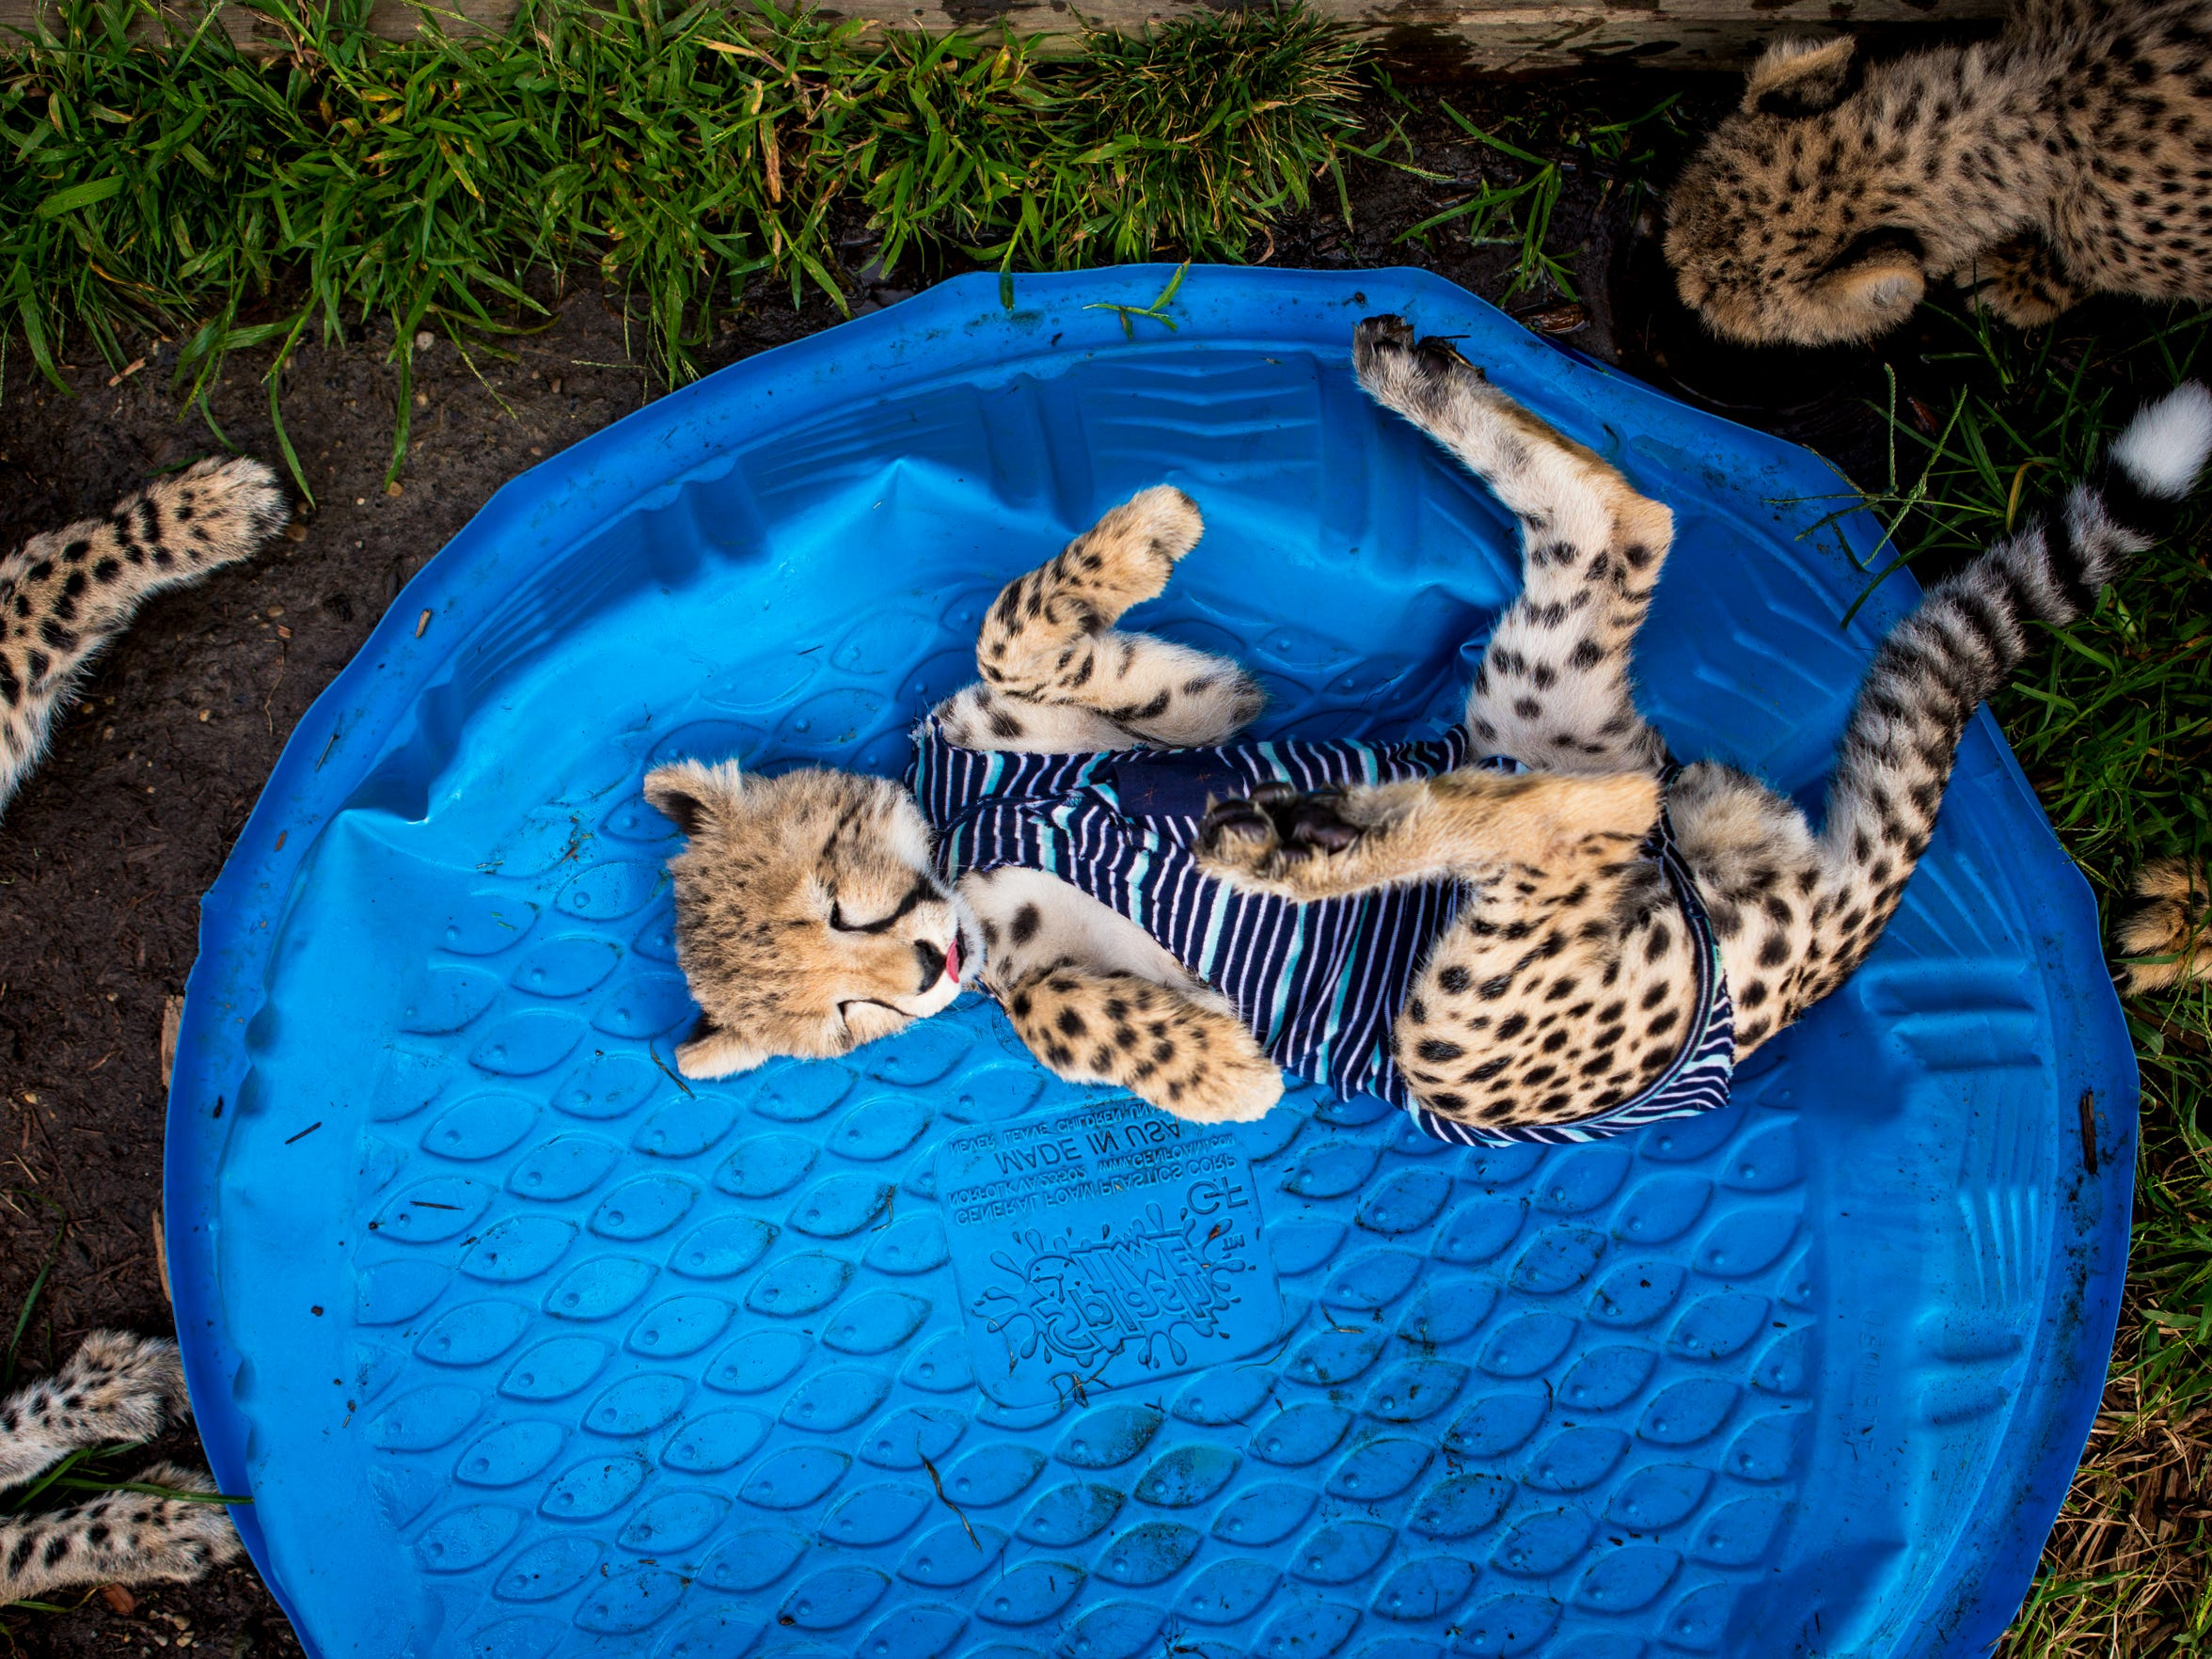 Redd, one of three Cincinnati Zoo cheetah cubs born prematurely during a rare C-section, rolls over in a plastic pool during playtime Wednesday, October 10, 2016.